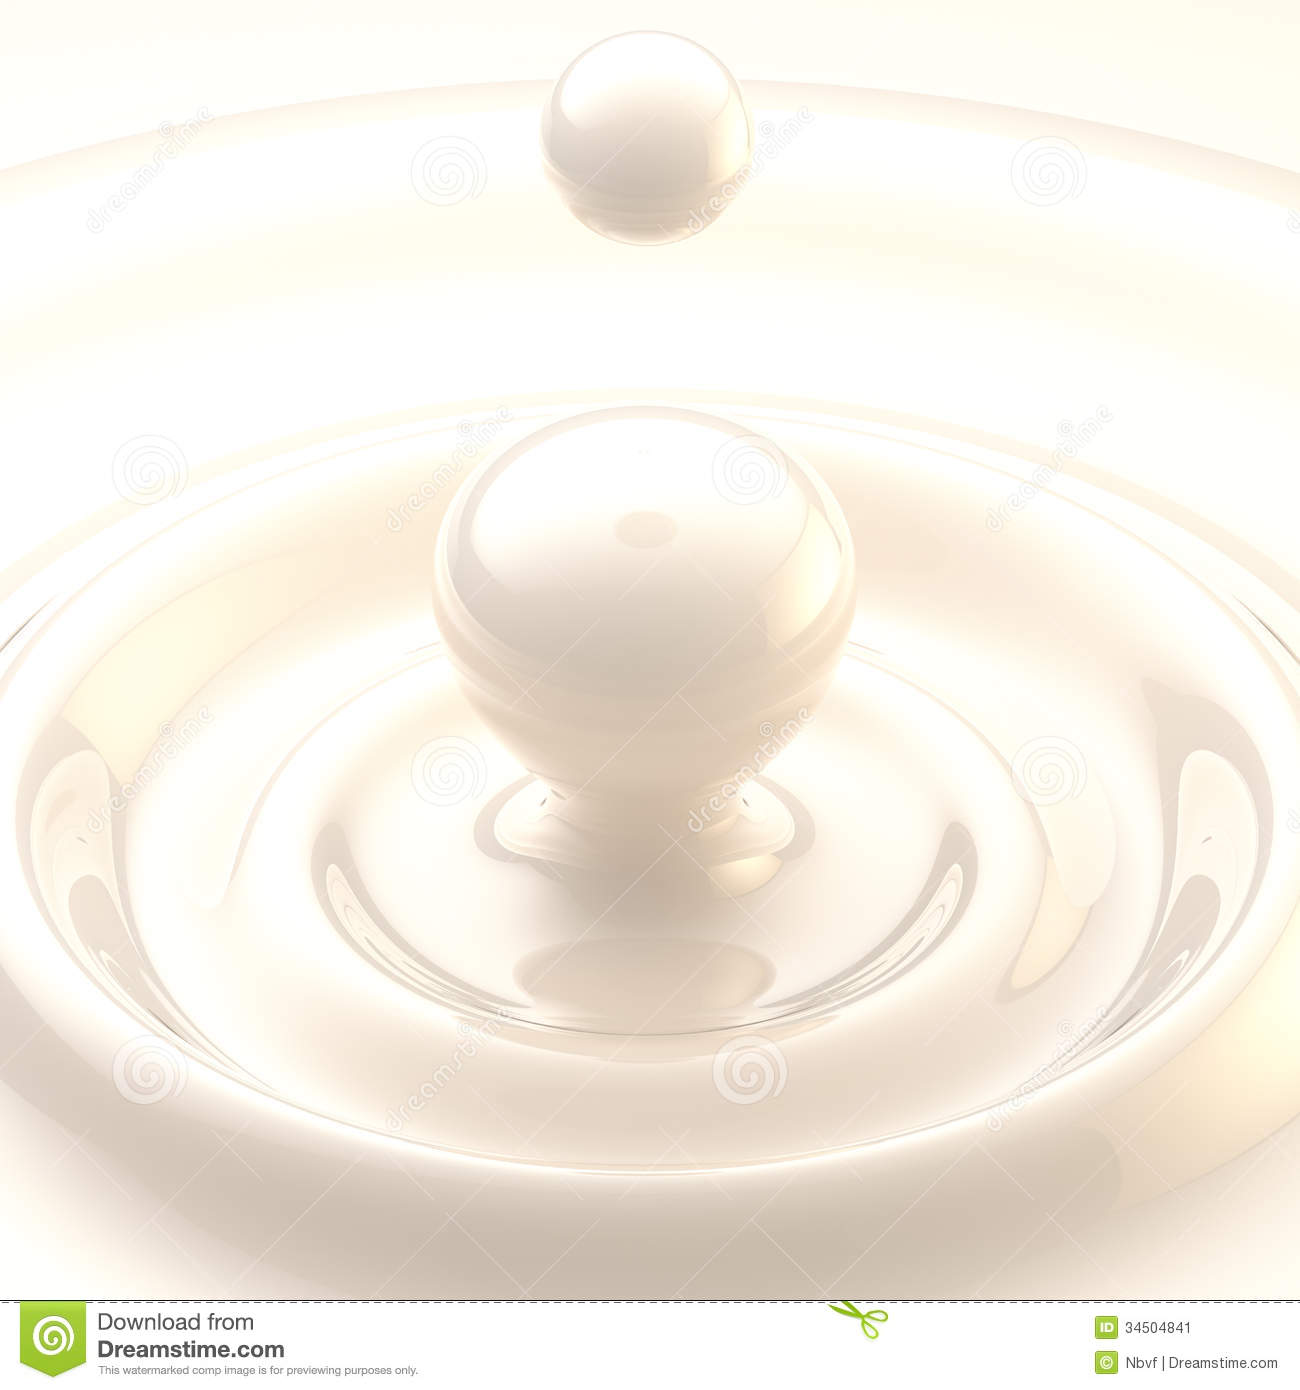 Falling Water Wallpaper Free Download Light Background Cream Or Milk Liquid Drop Stock Image